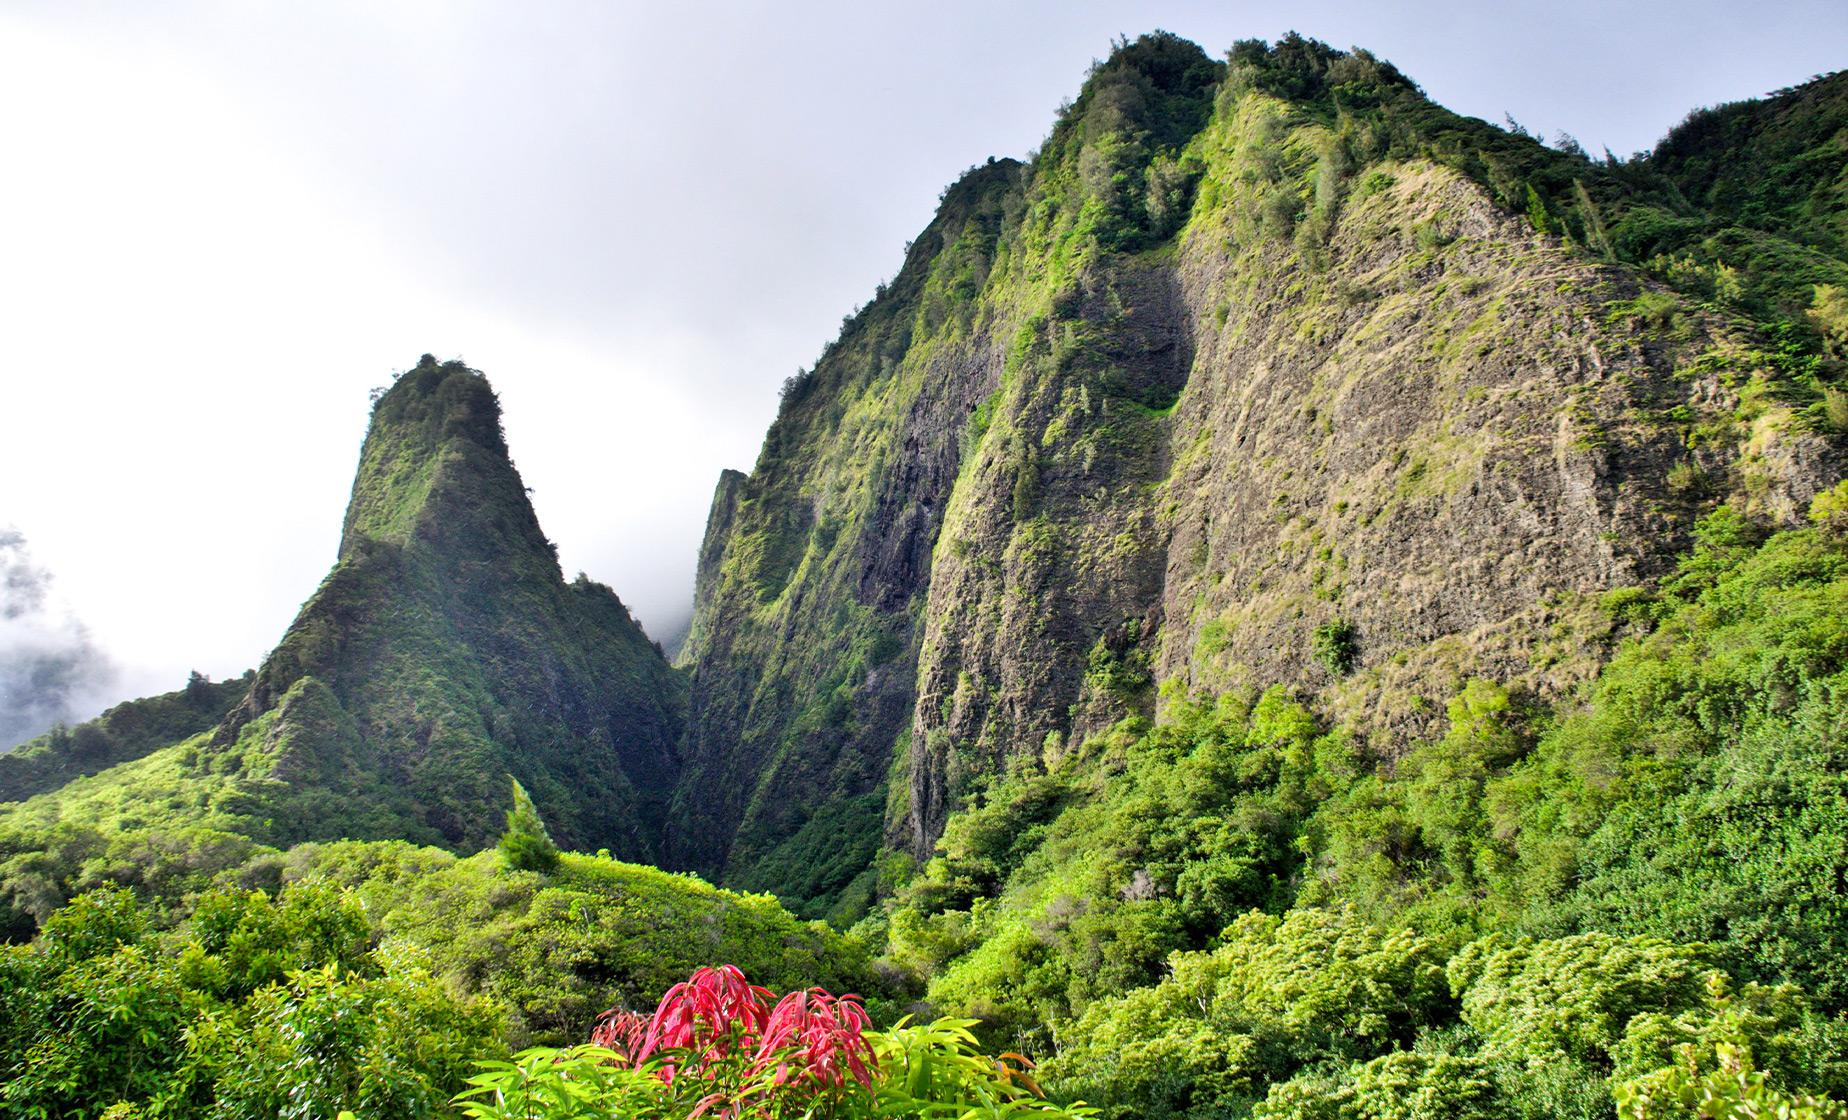 Hawaii Cruise Shore Excursions in Maui-Lahaina | tram ride plantation sugarcane  coffee Macadamia Nuts pineapple  famous landmark  state-of-the-art marine park aquarium in Maui-Lahaina